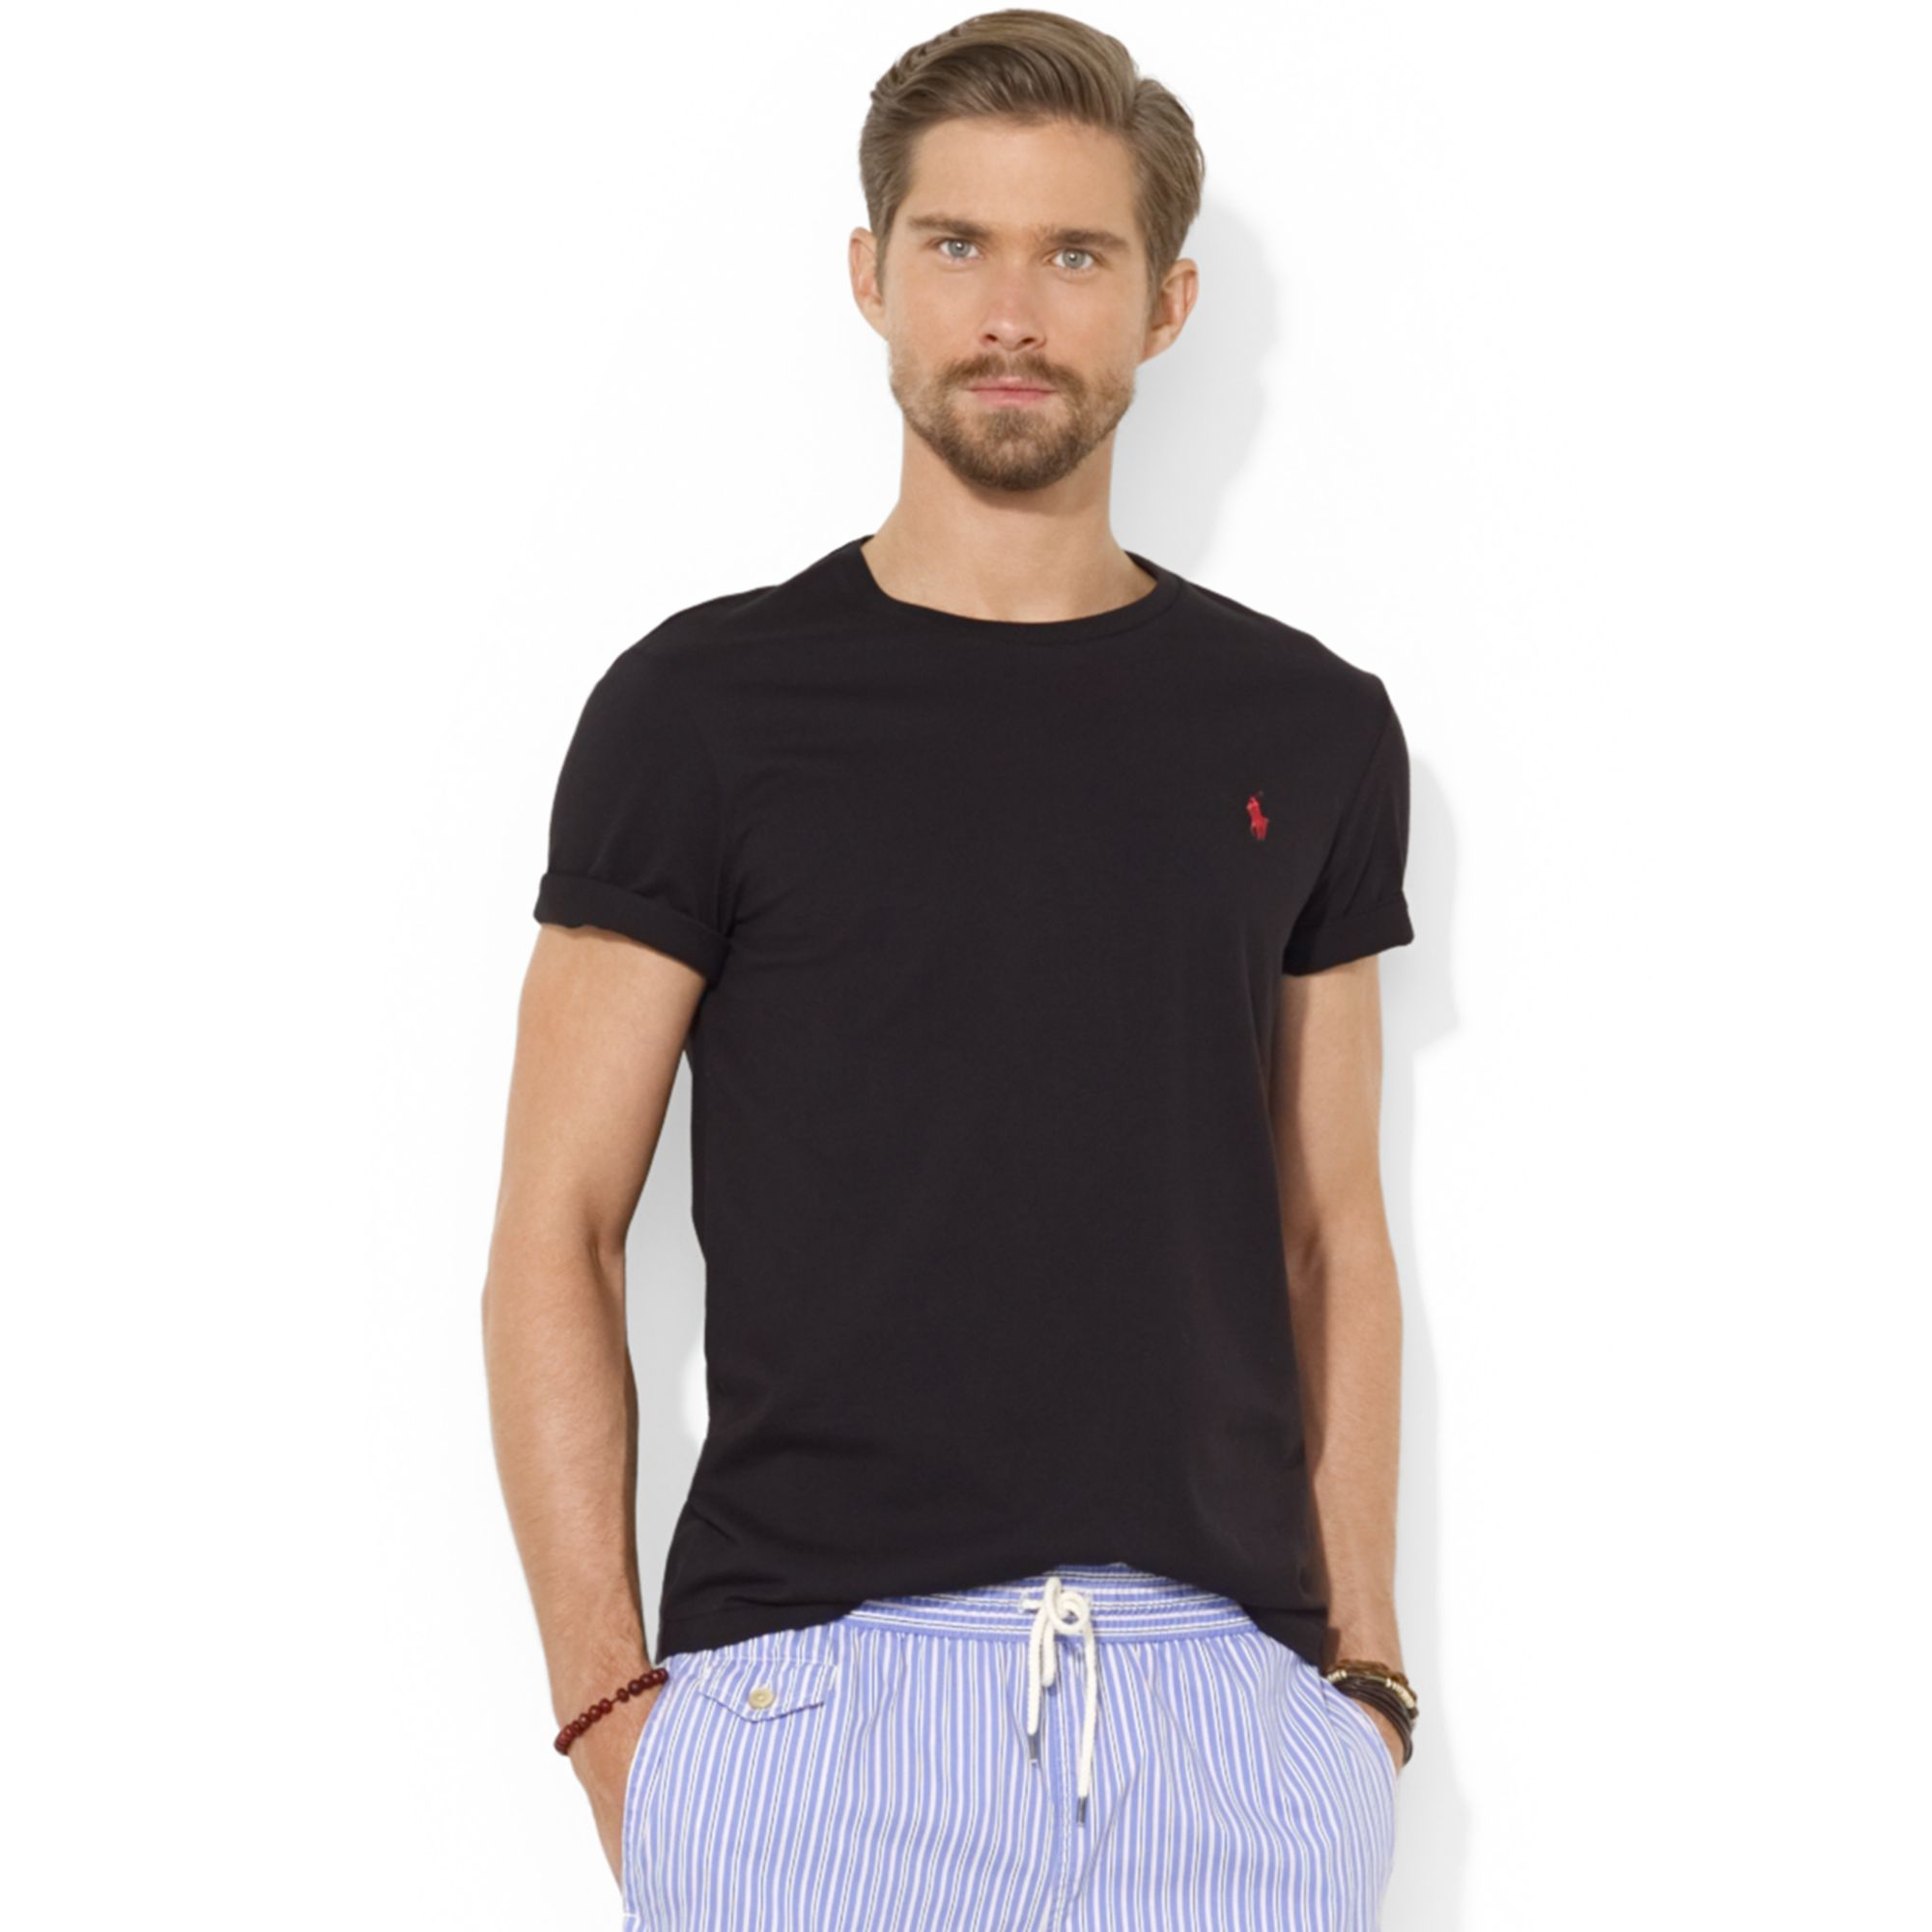 ralph lauren cotton t shirt where to buy ralph lauren. Black Bedroom Furniture Sets. Home Design Ideas